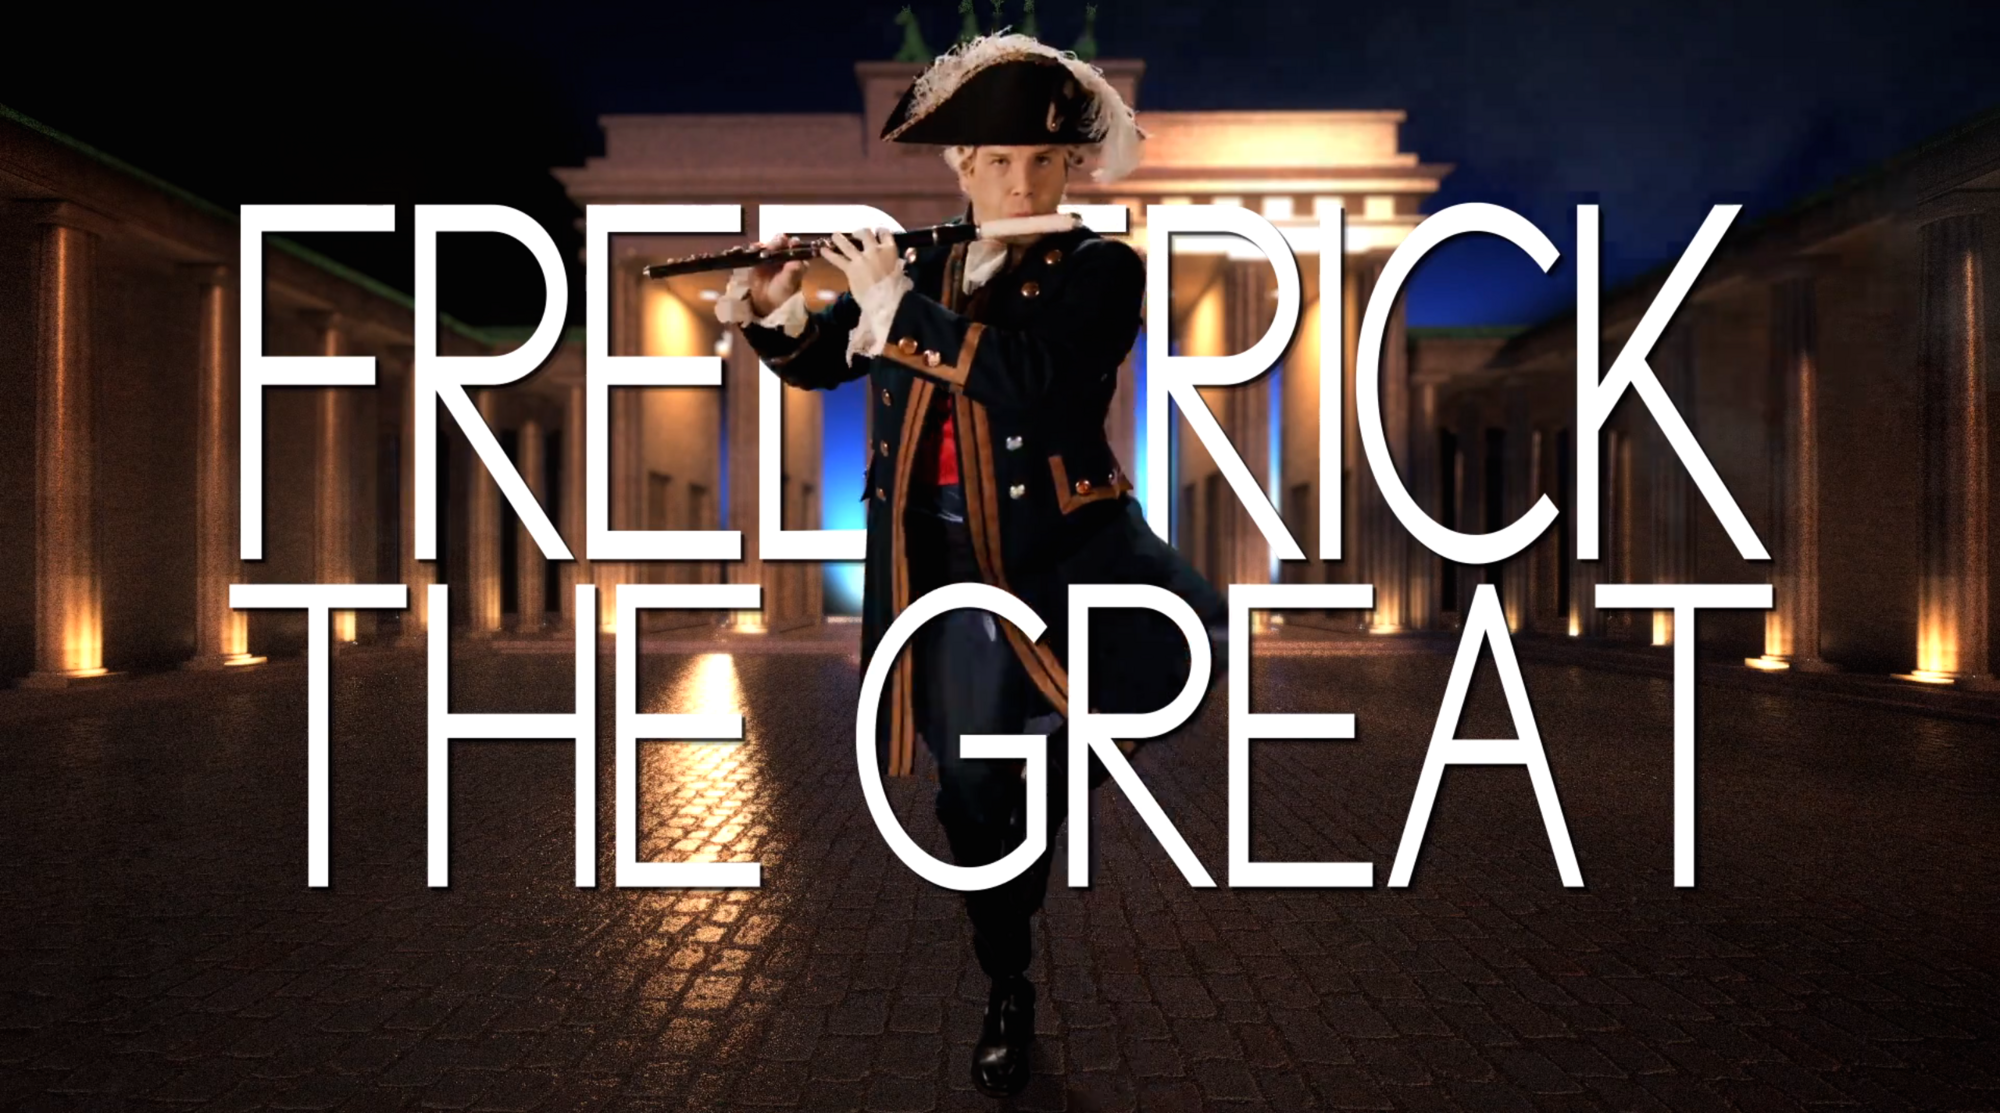 frederick the great vs This lesson explores the life and accomplishments of king frederick ii, also known as frederick the great by winning wars and expanding.